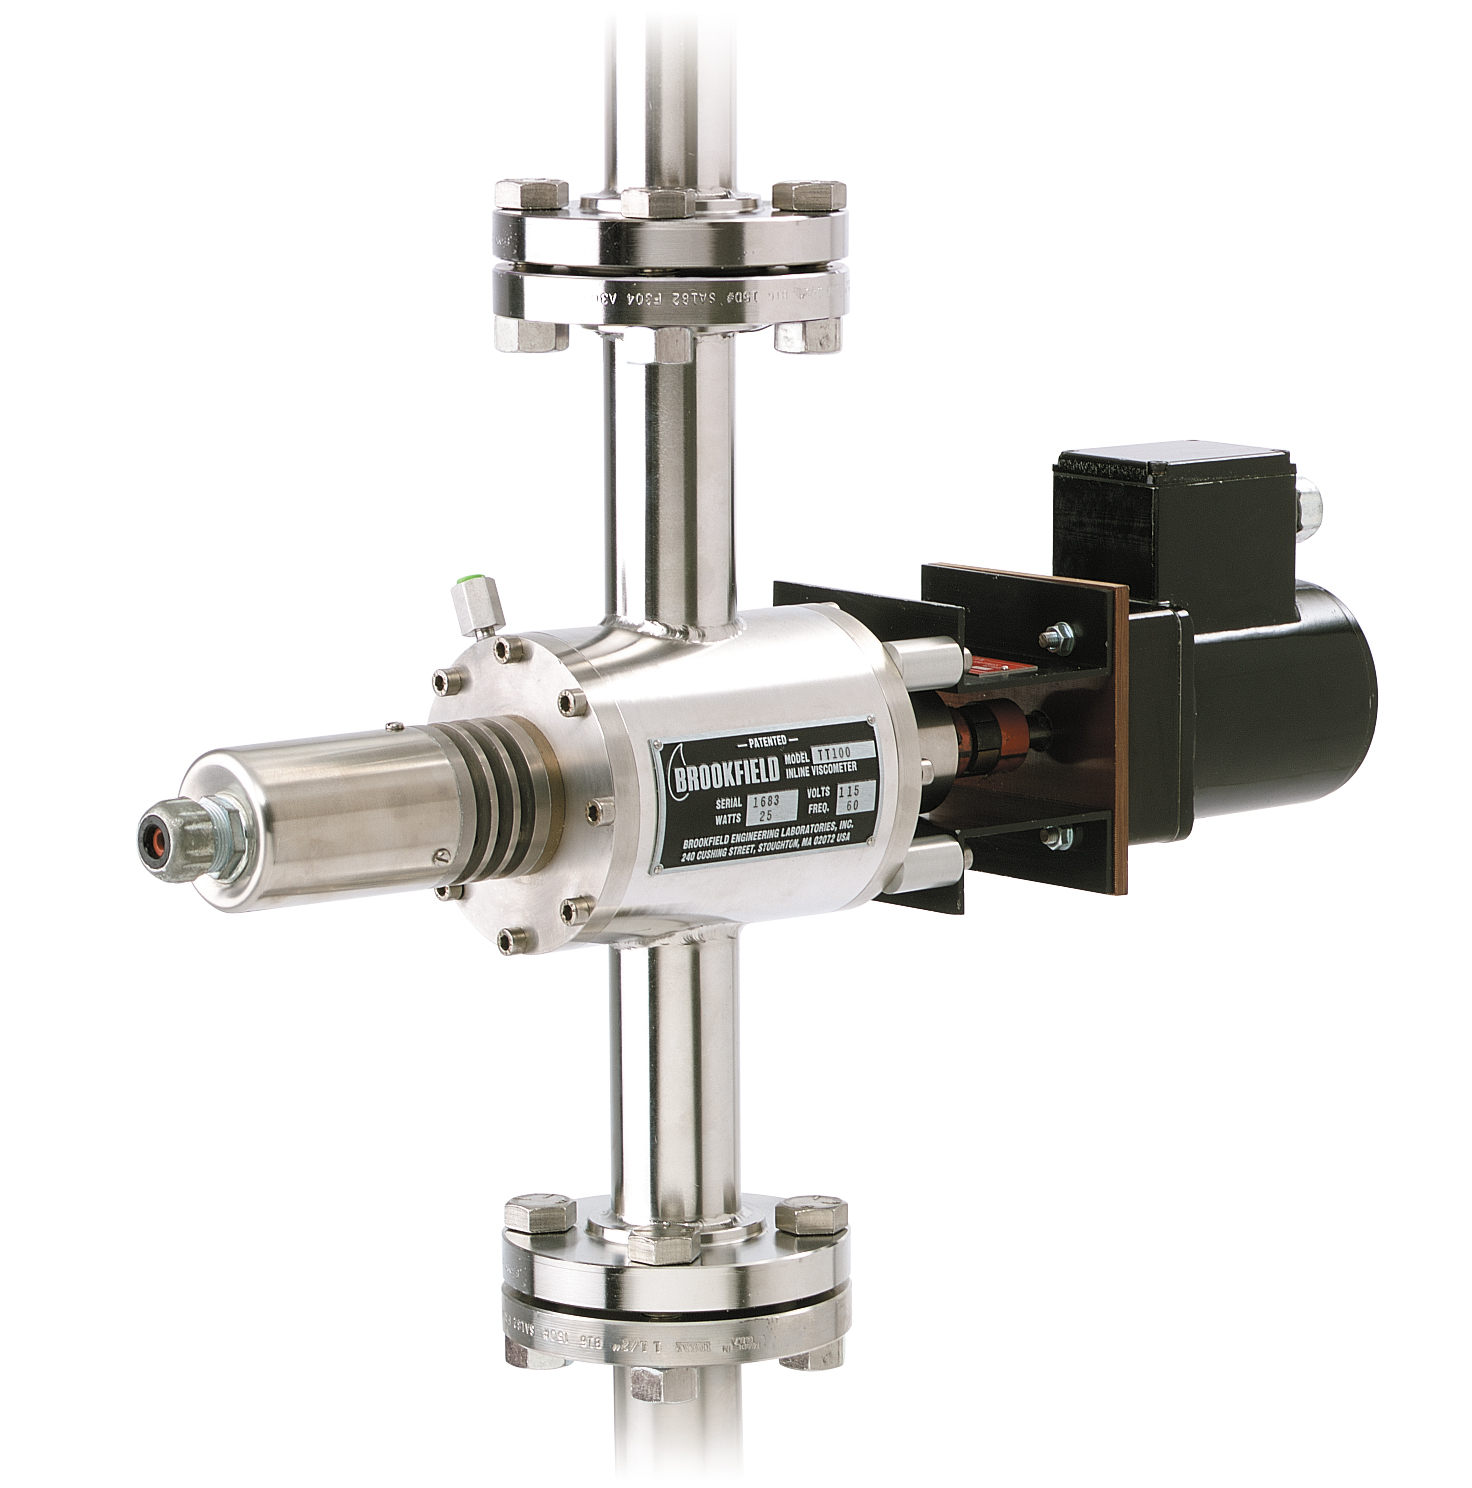 instrumentation laboratory company product pipeline Research corridor recently added new report titled laboratory analytical instrumentation market report - global trends, market share, industry size company profiles of key vendors overview on the existing product portfolio, products in the pipeline.